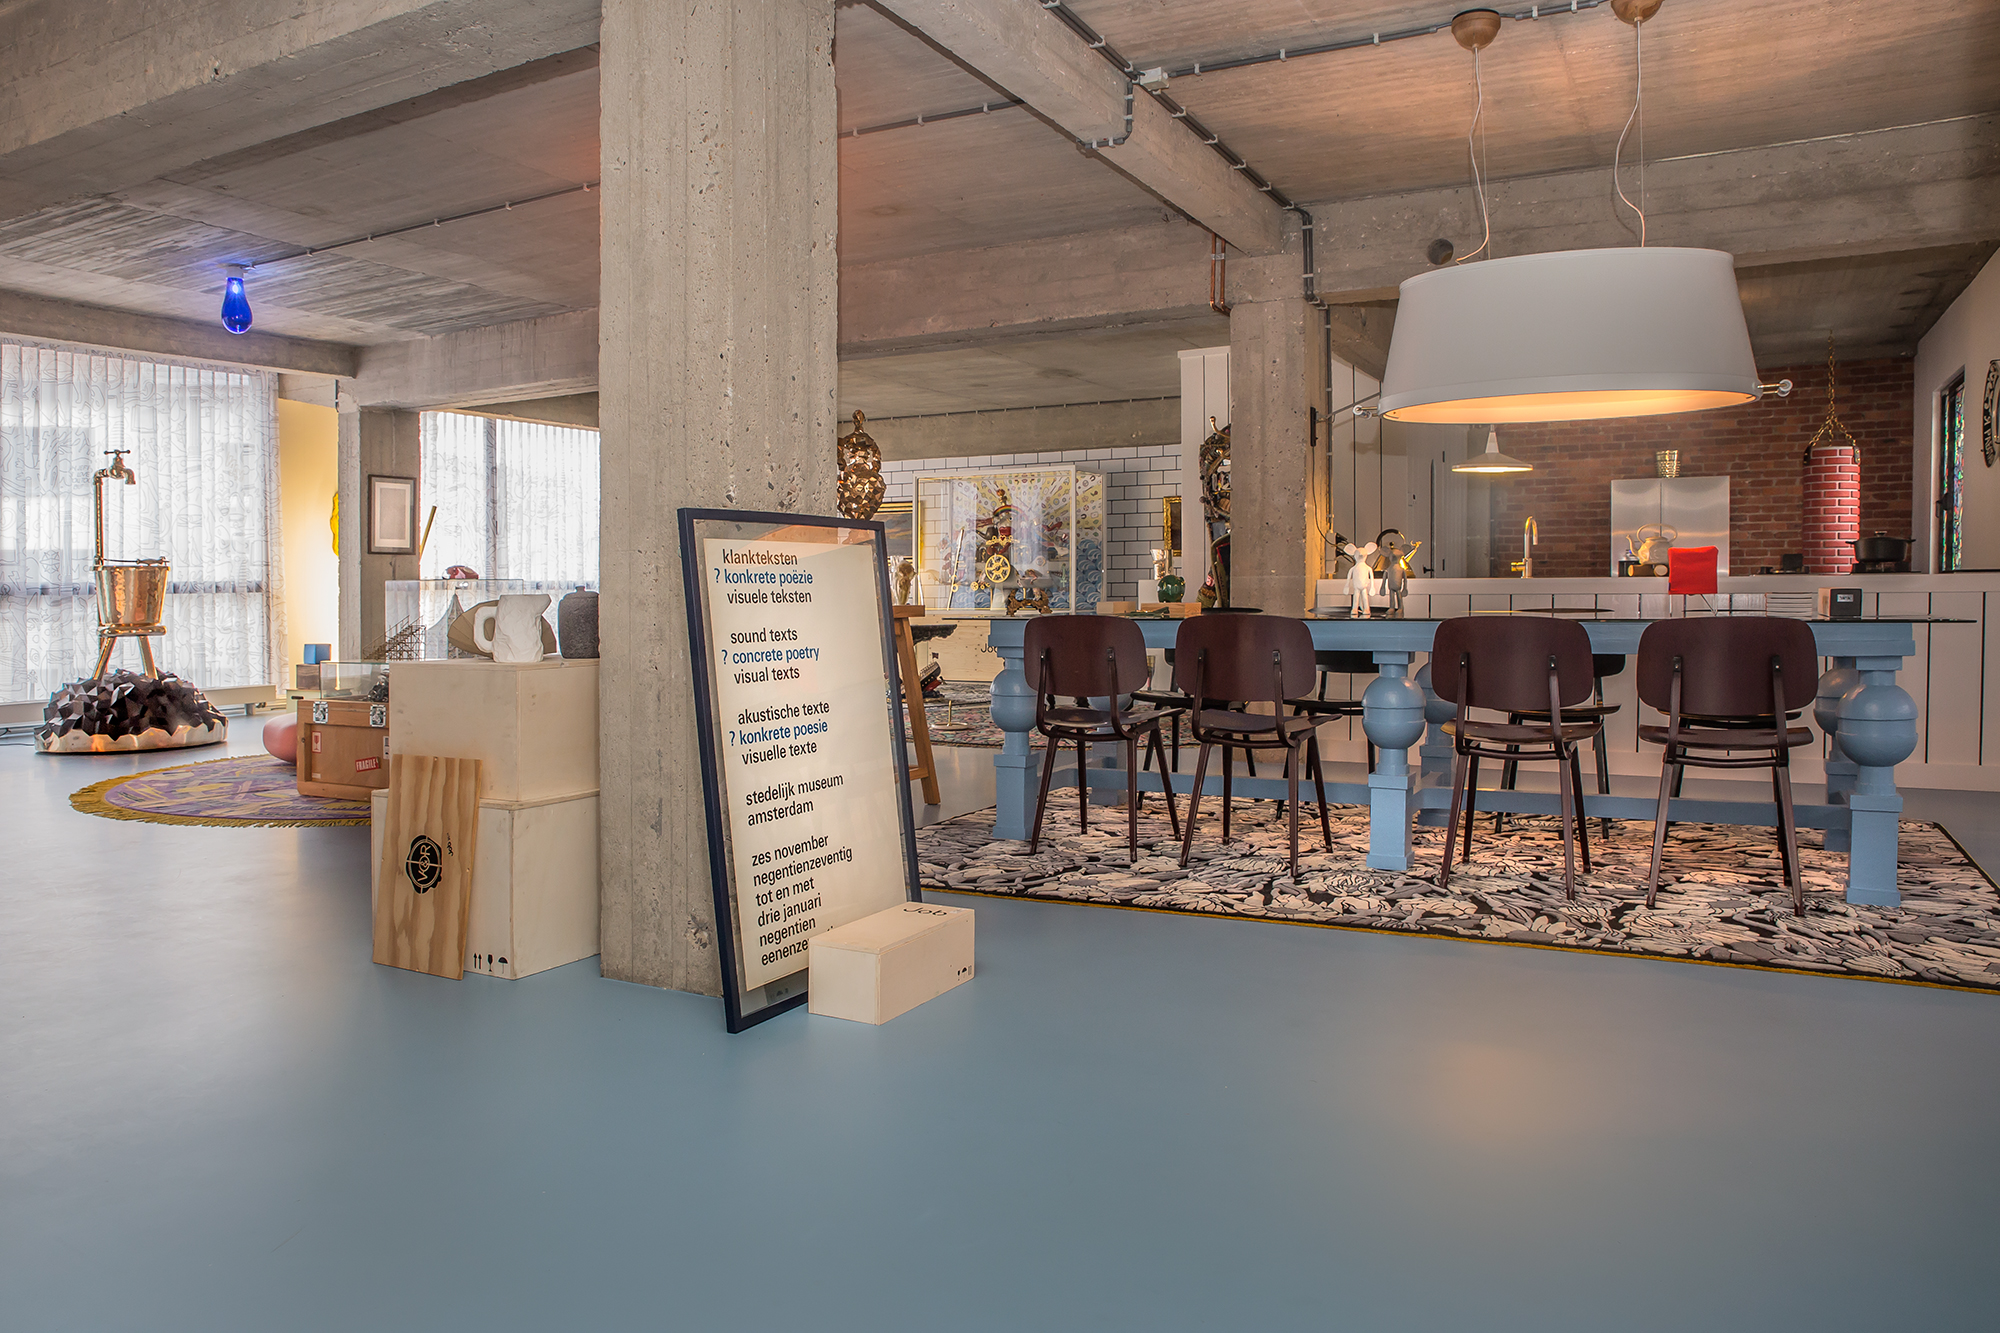 Studio-Job-redesigns-Antwerp-HQ-and-home-with-maximal-impact-Gallery_Dining